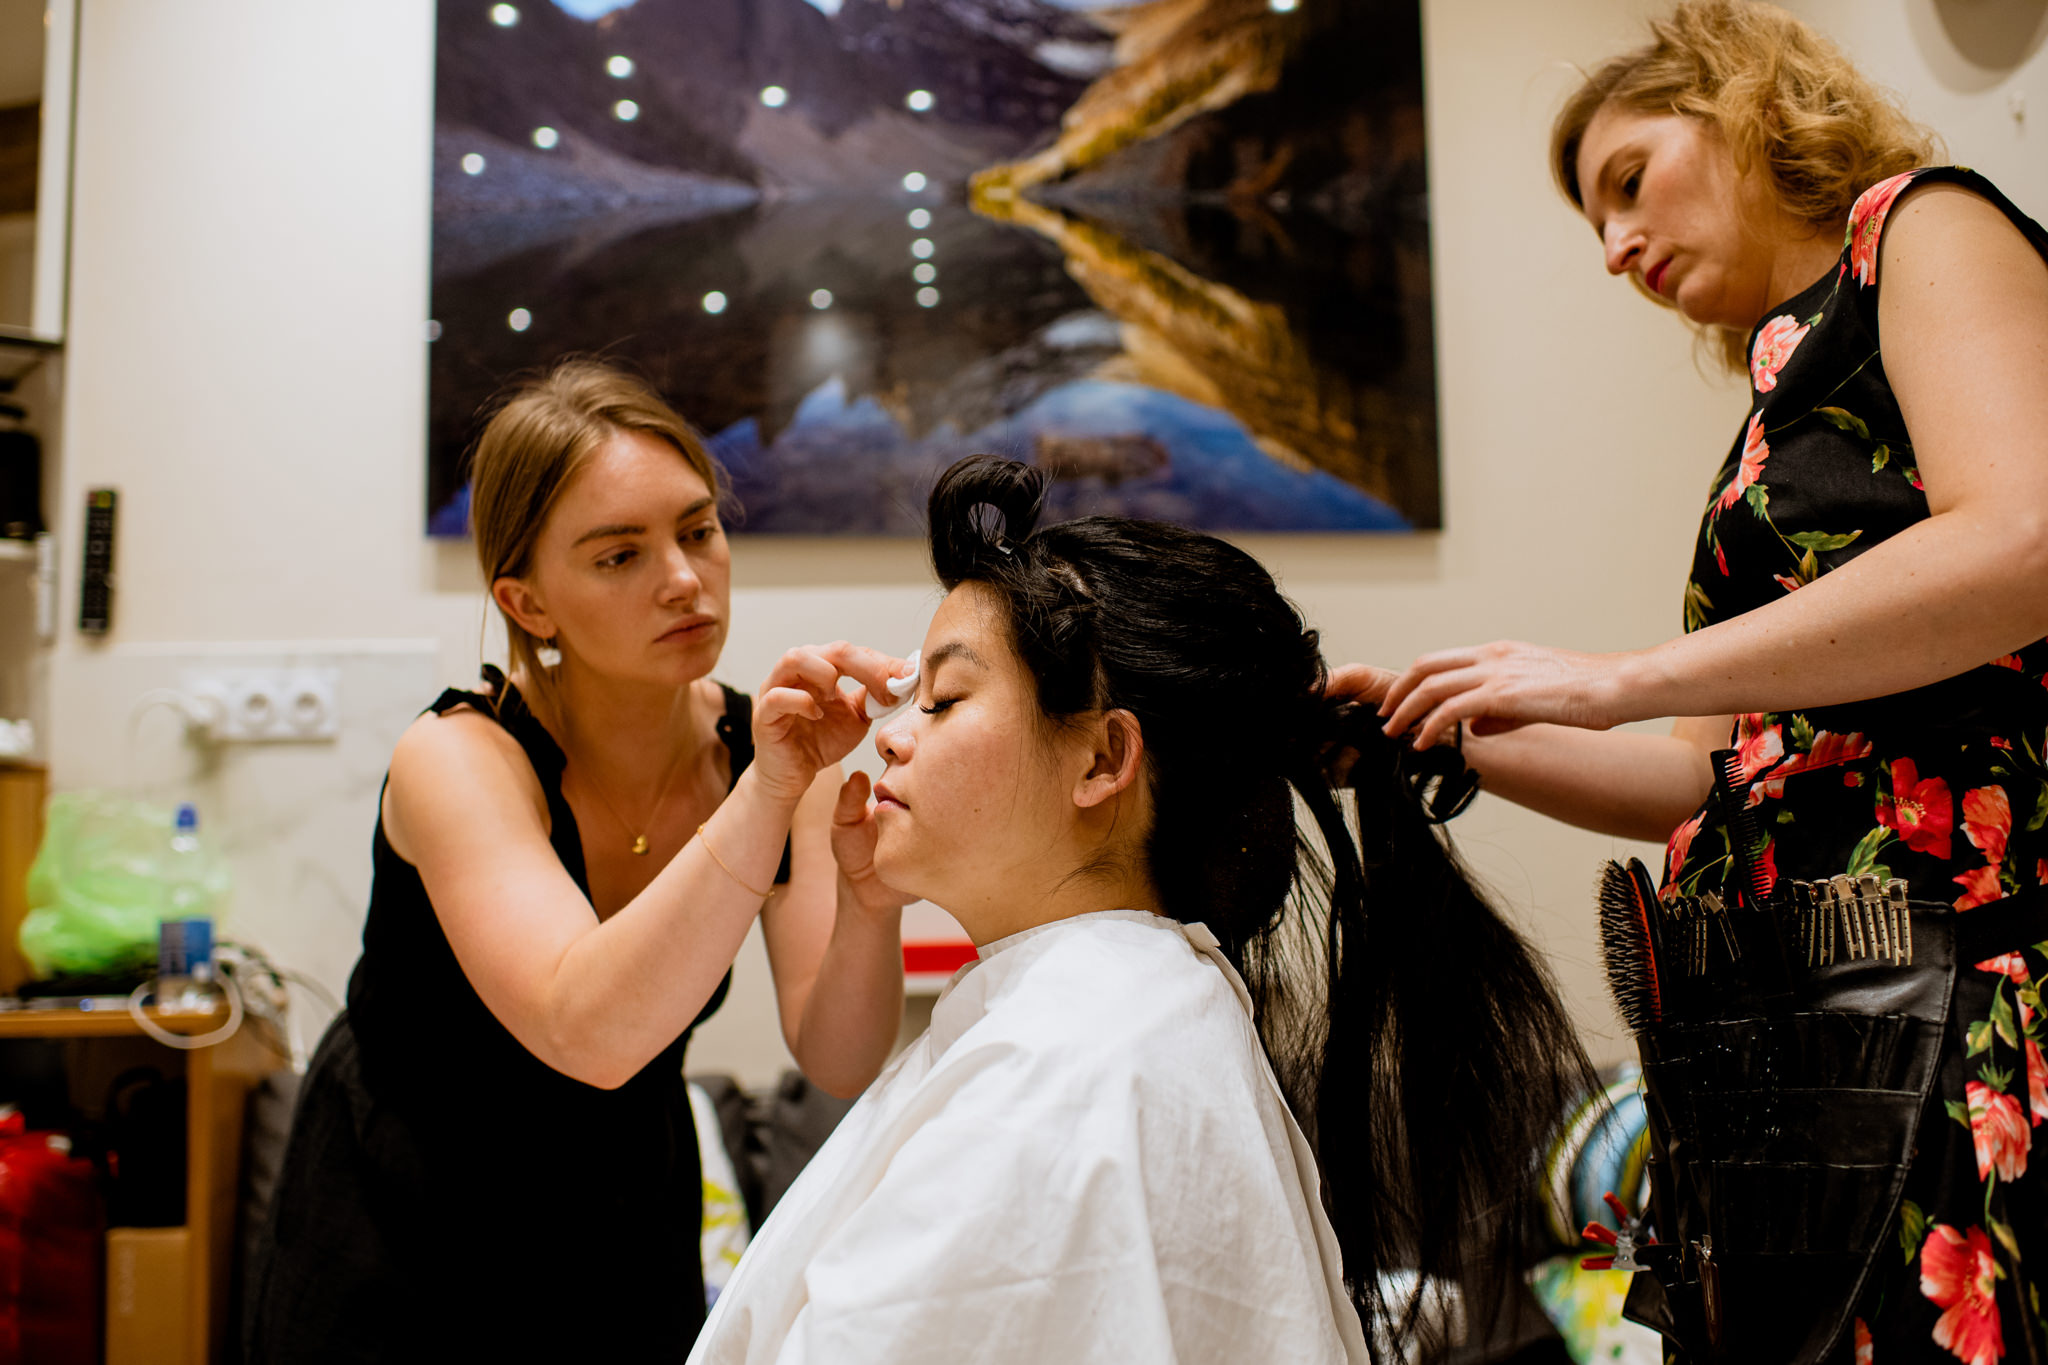 Bride-to-be sits as two women attend to her hair and make-up.